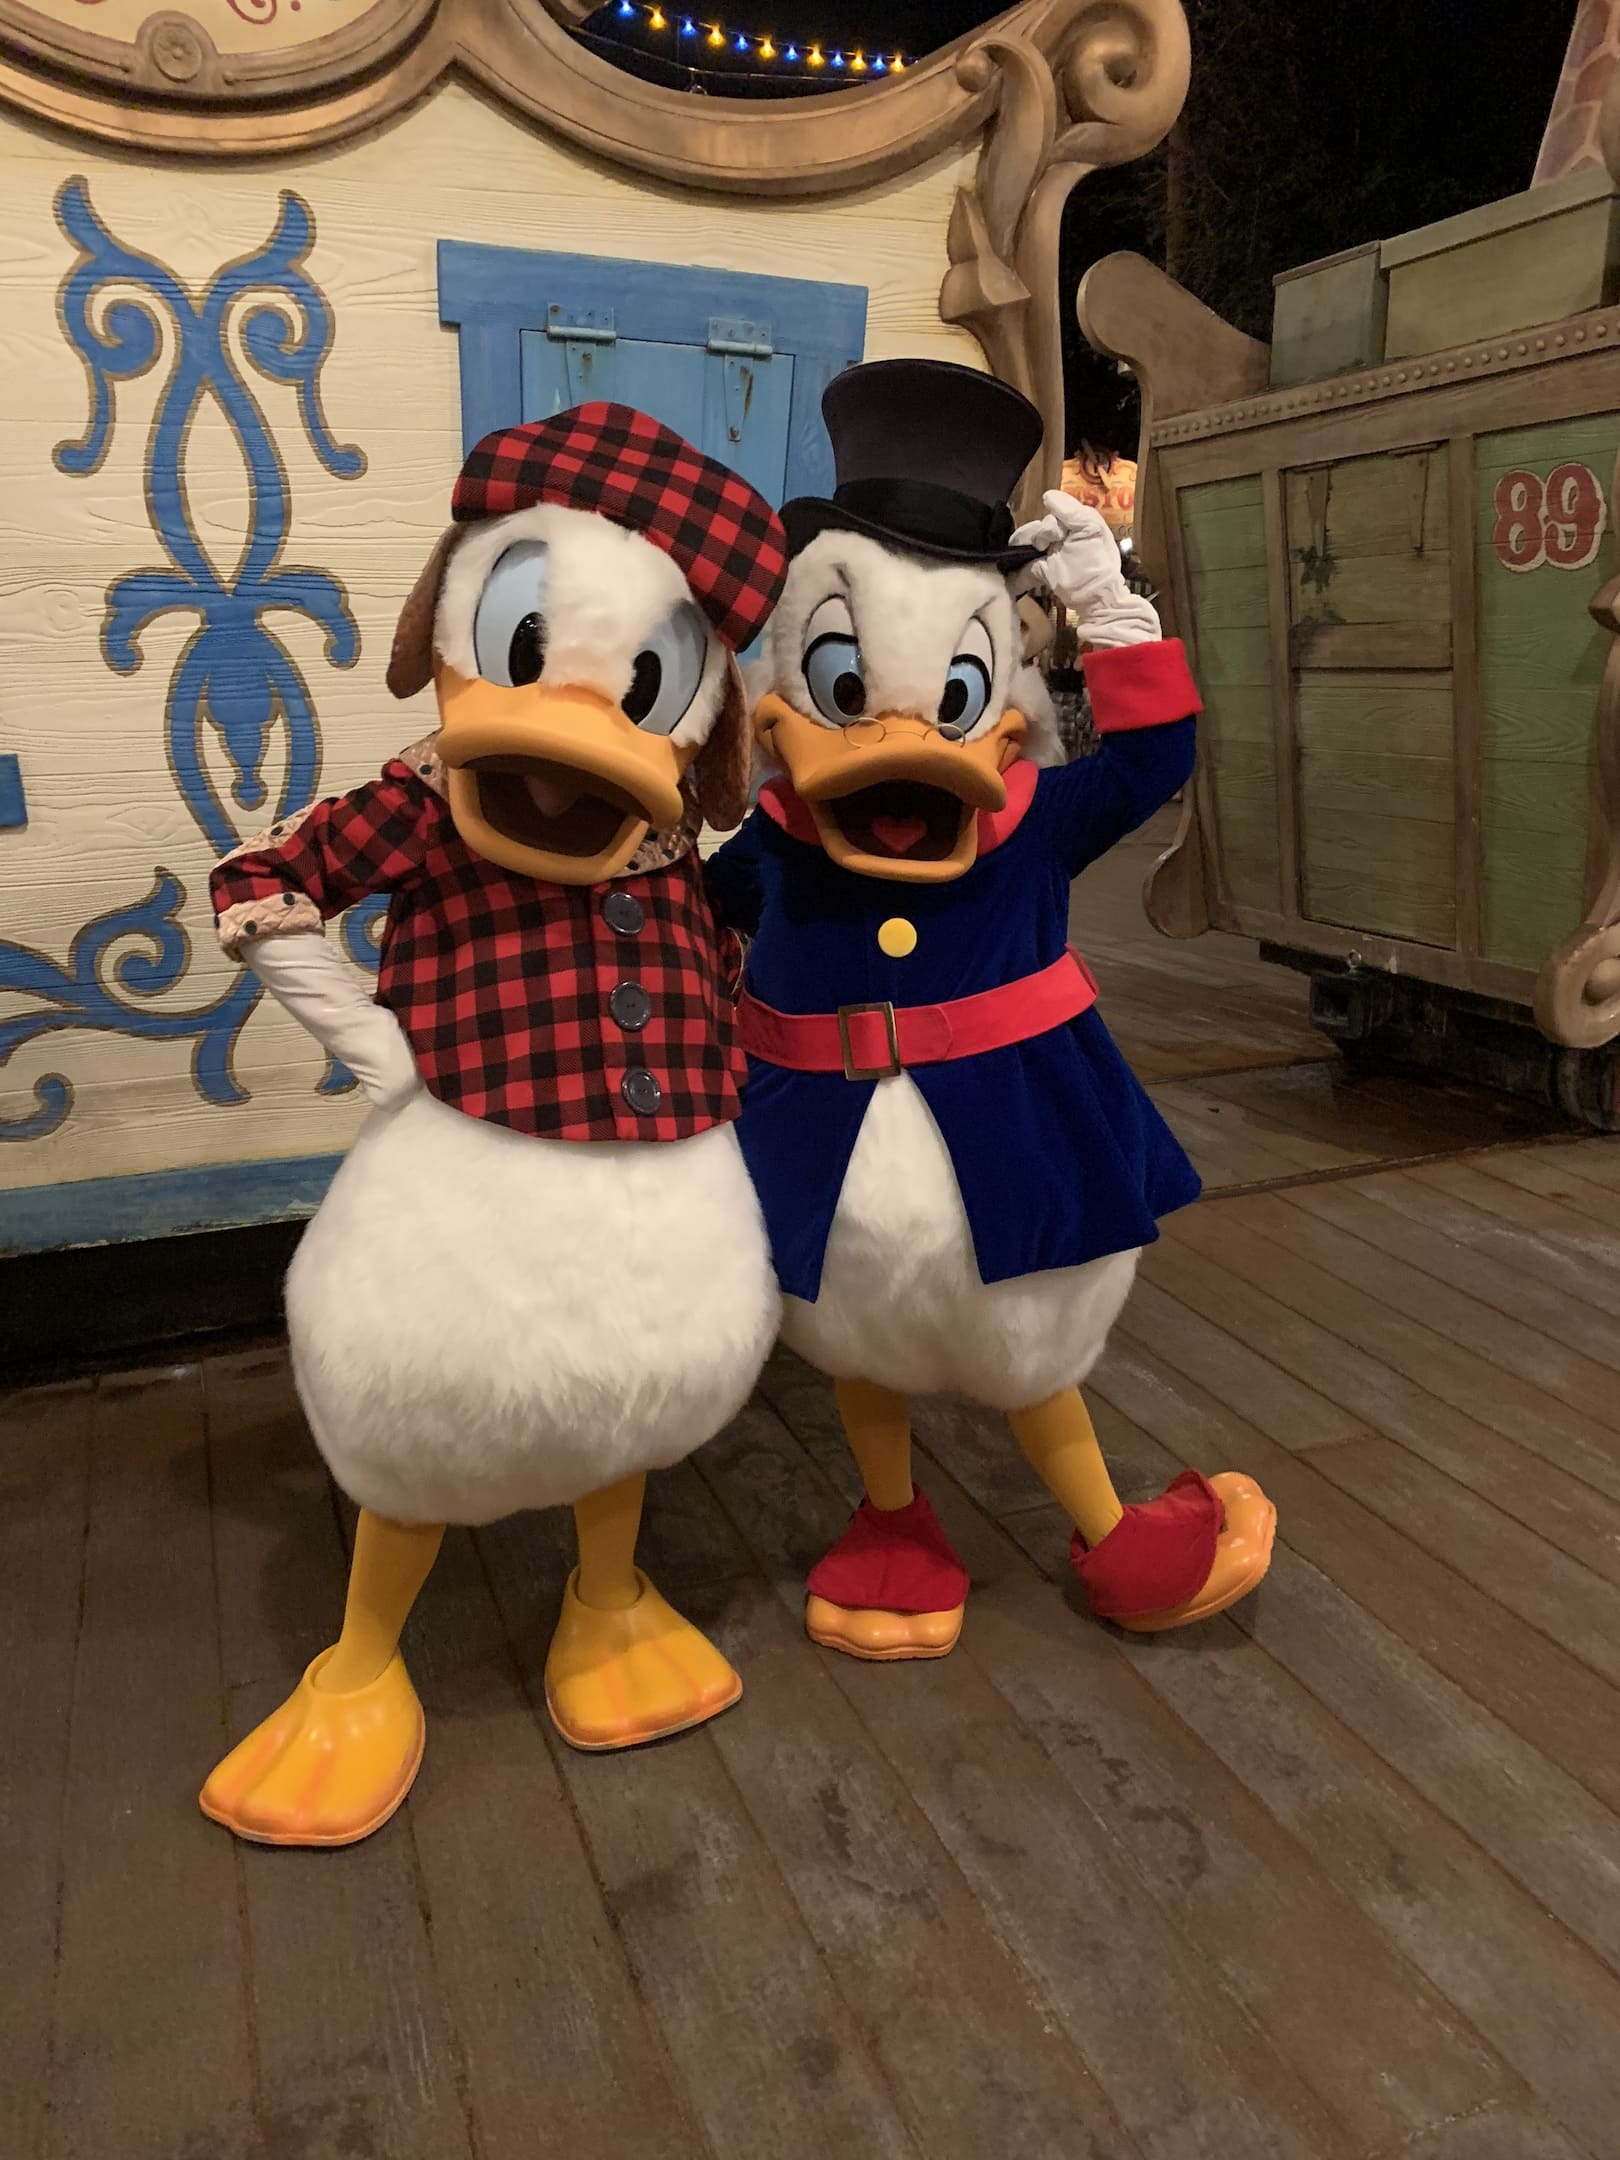 Donald and Scrooge McDuck Mickey's Very Merry Christmas Party Magic Kingdom